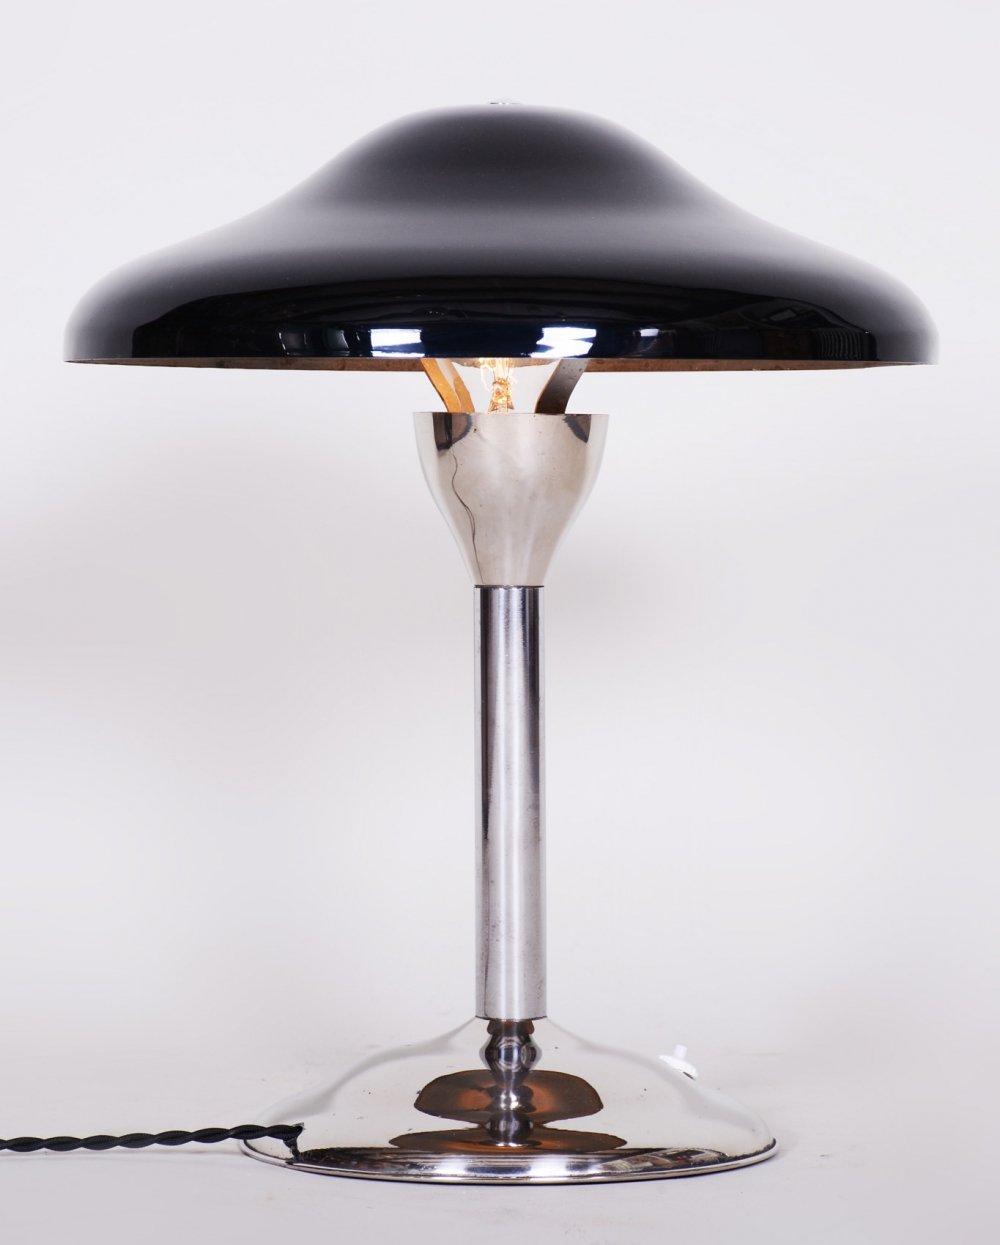 Czech Black Bauhaus Lamp by Architect Frantisek Anyz, 1930s